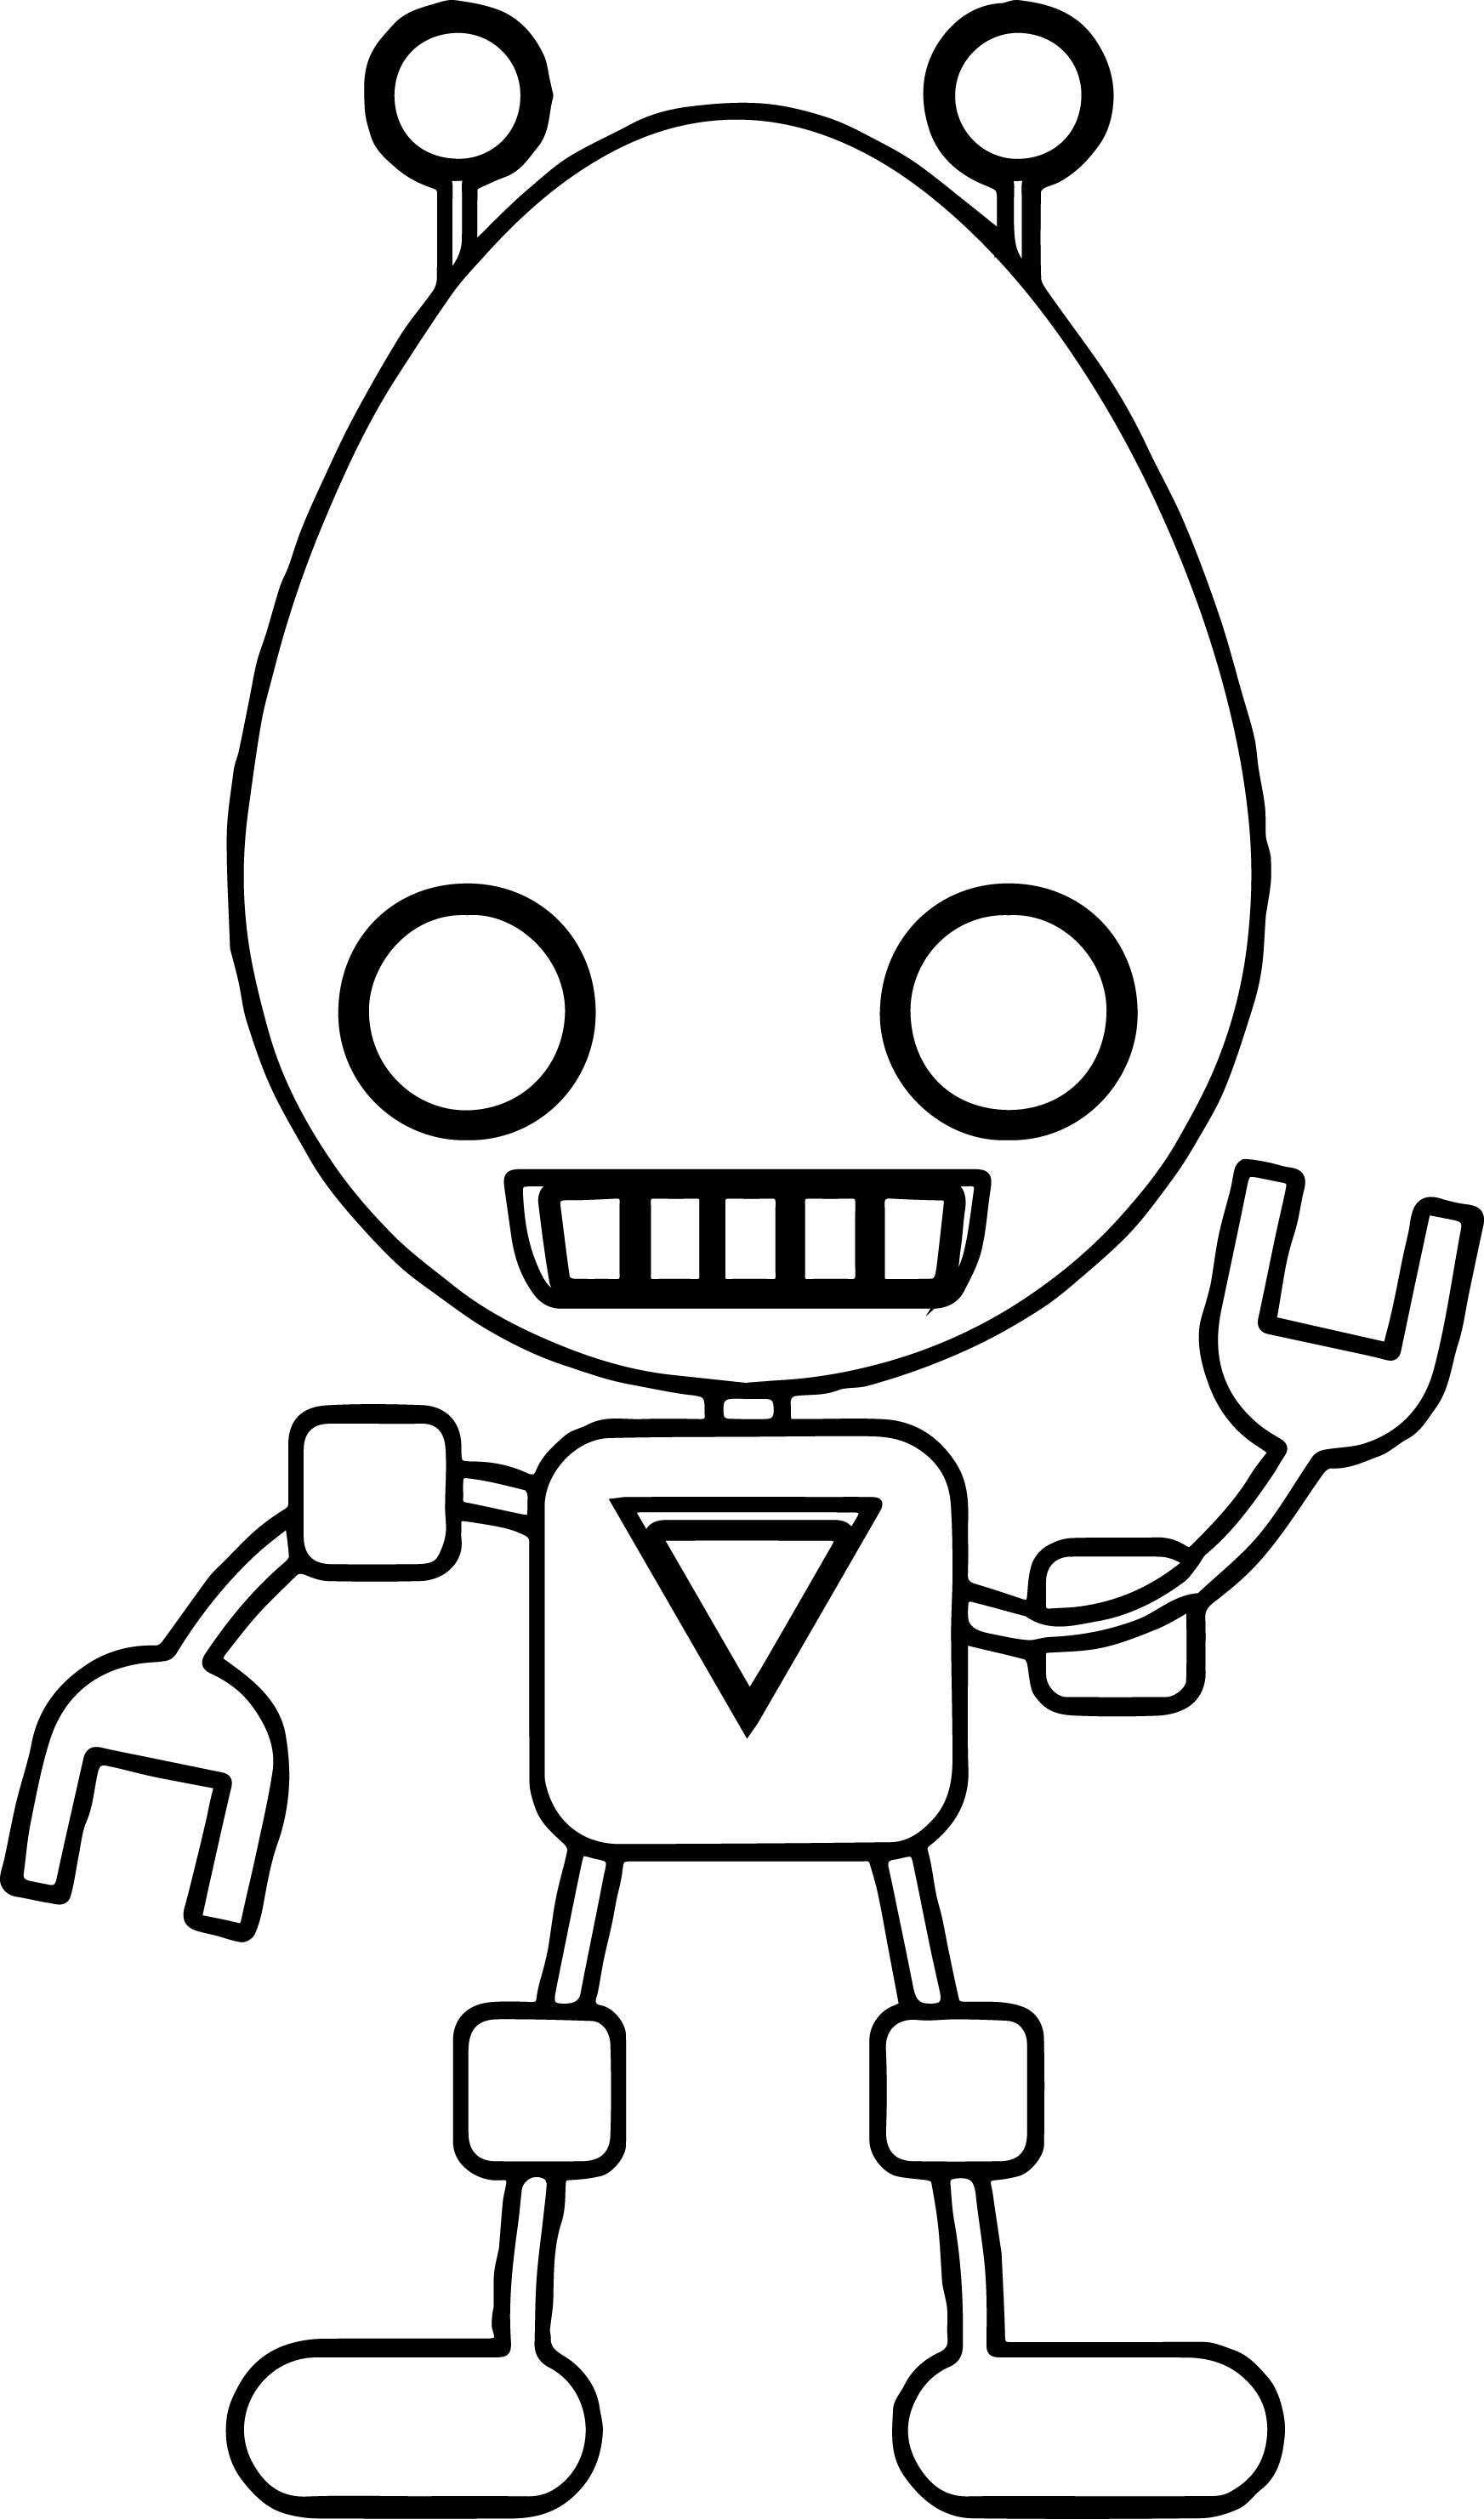 Egg Robot Coloring Page